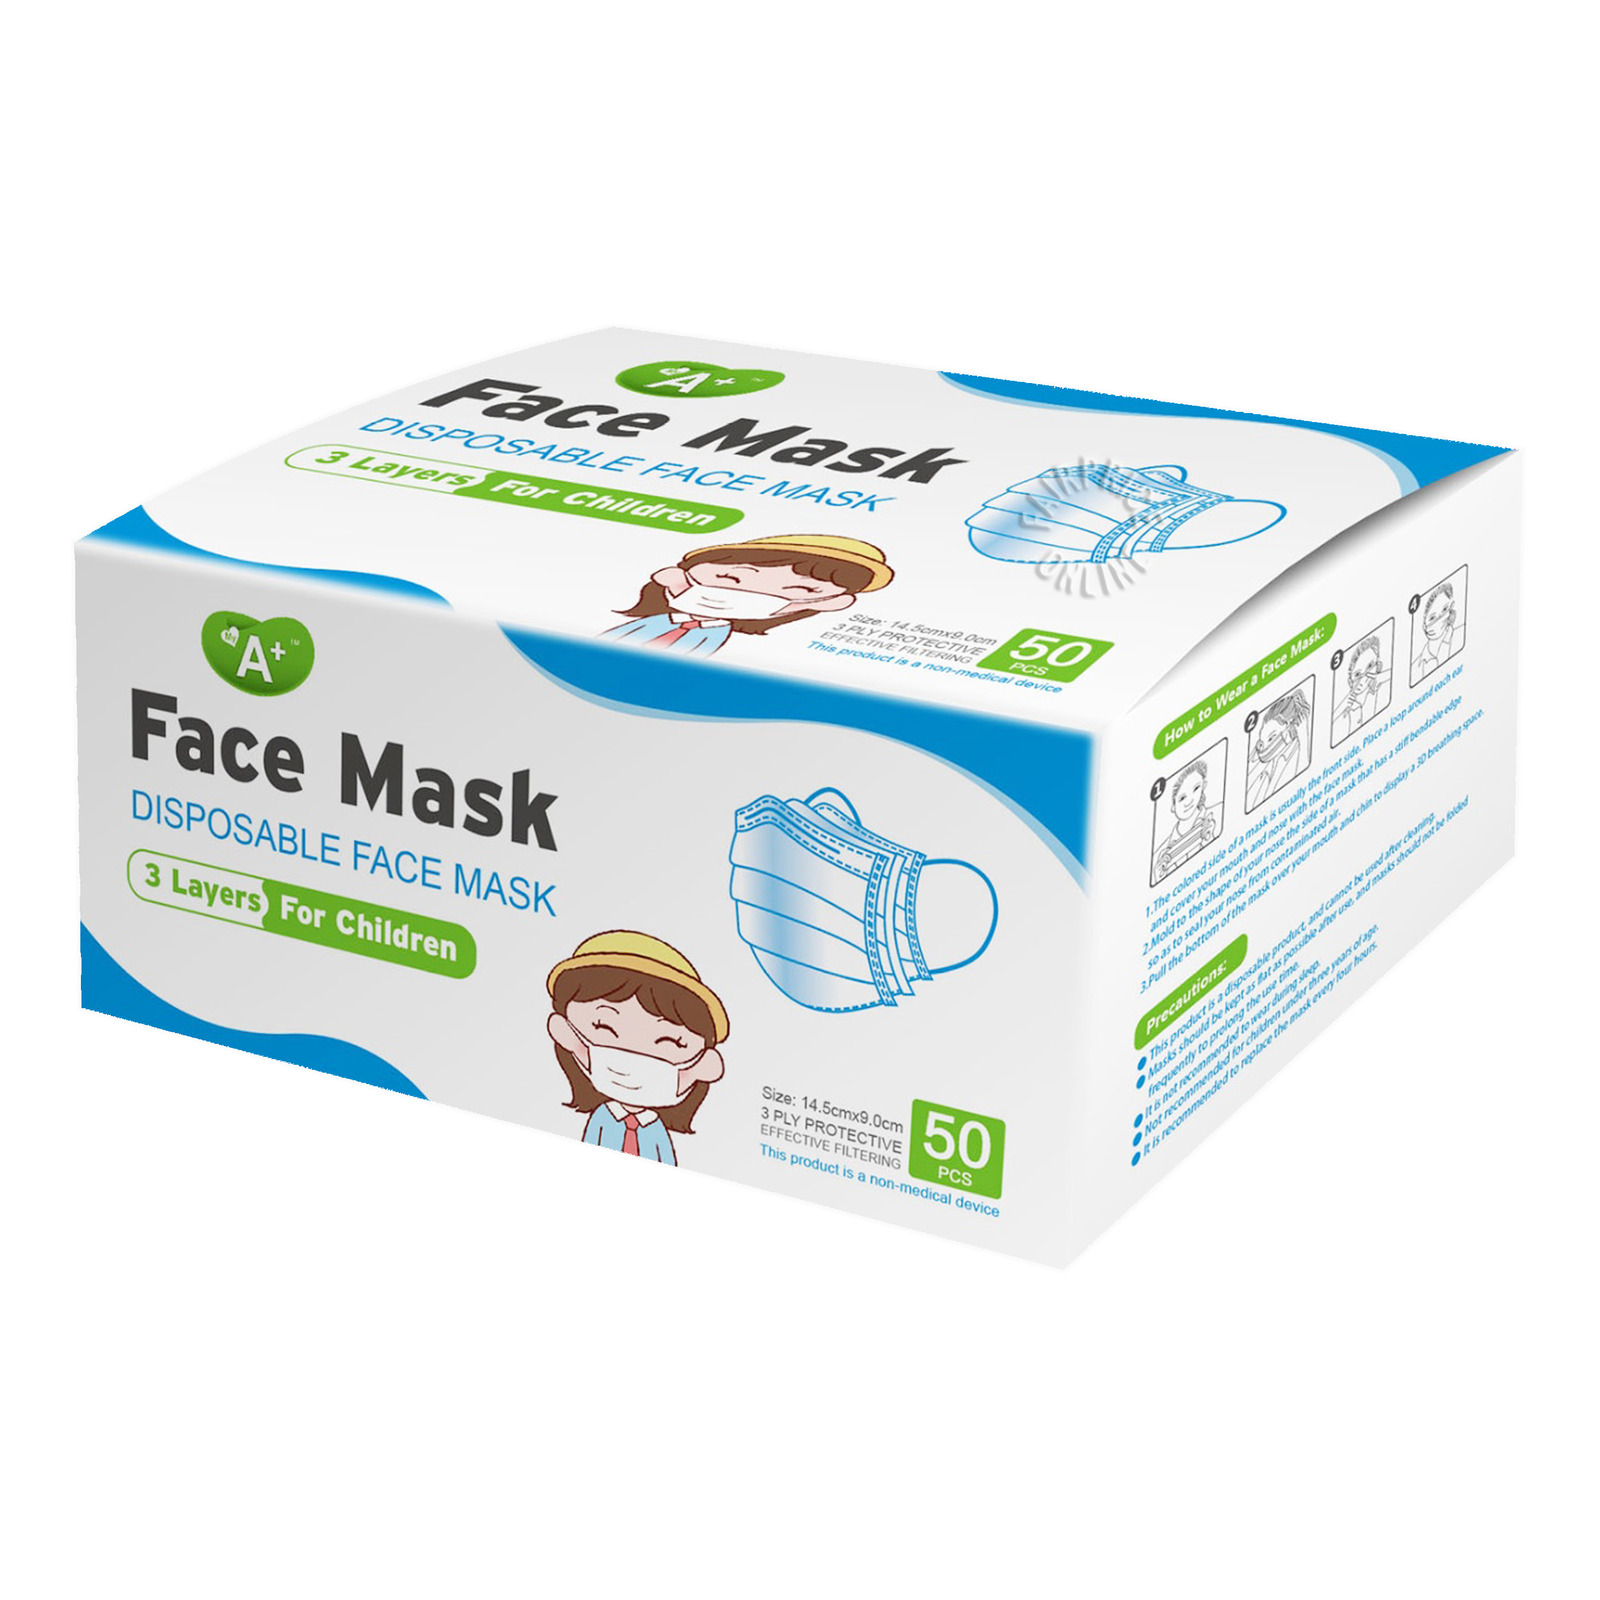 A+ Disposable Face Mask For Children - Blue